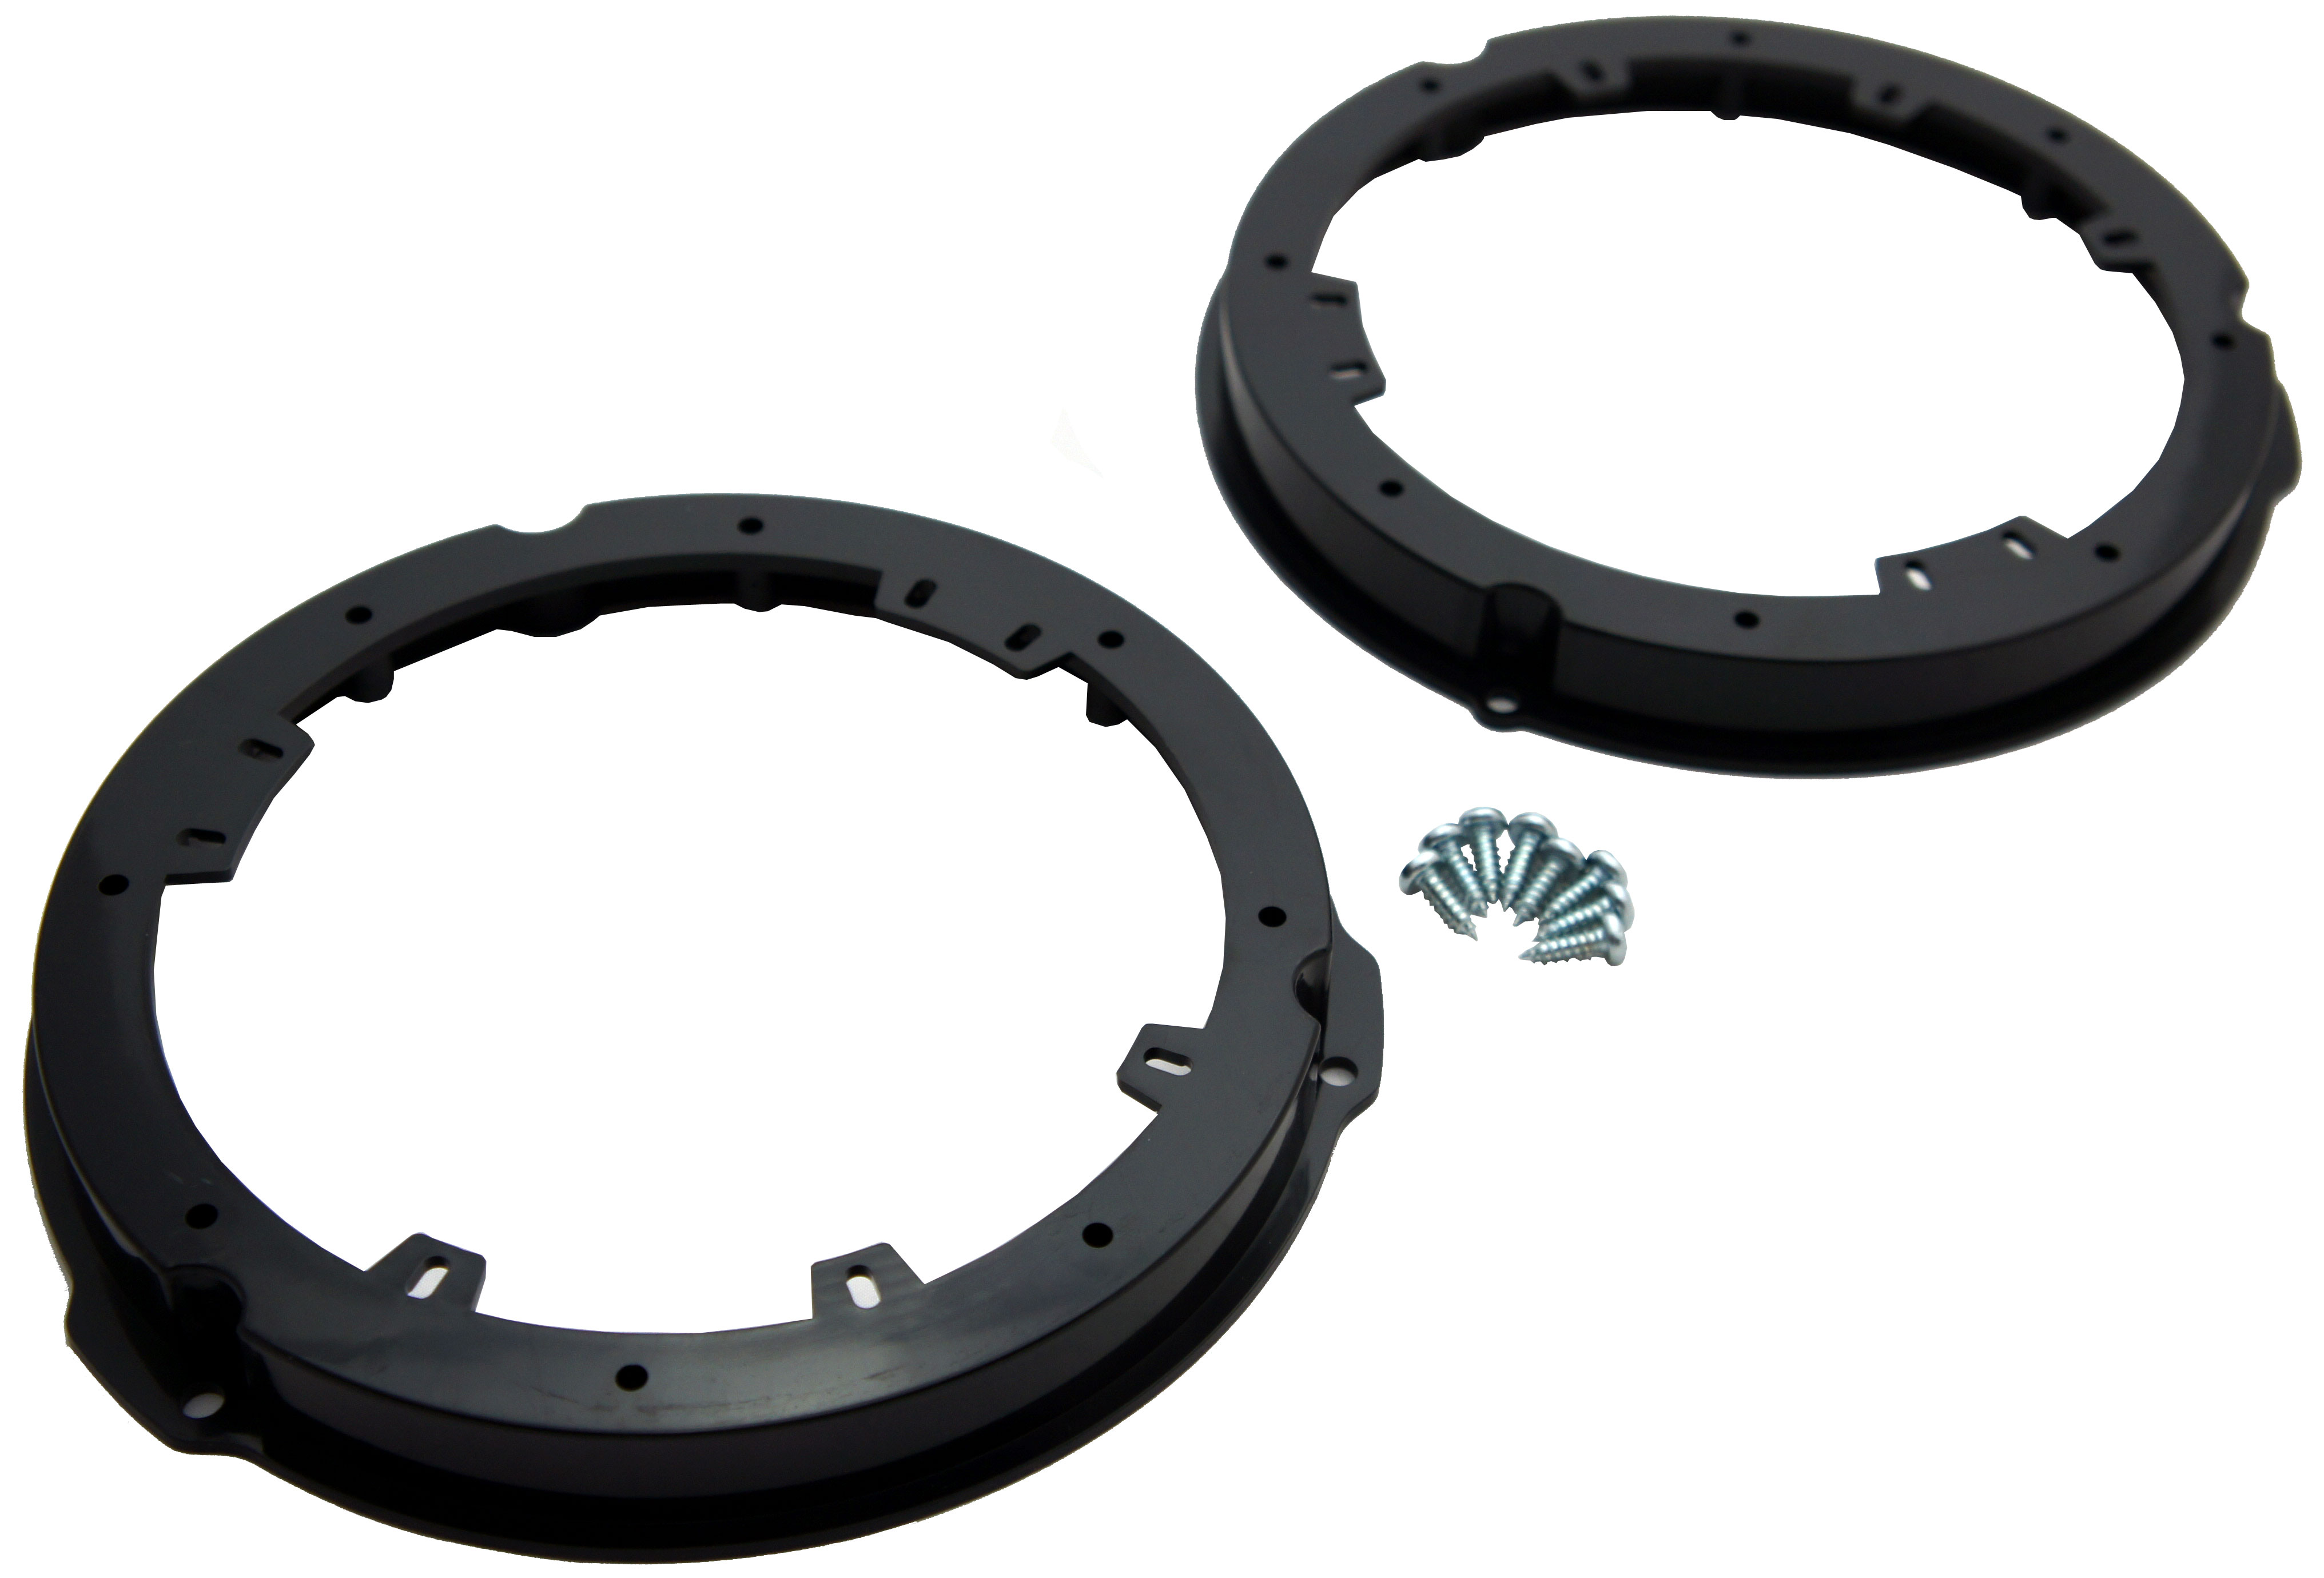 Ford Mustang 2015-2018 Rear Factory Speaker to Aftermarket 6.5 Speakers Adapters